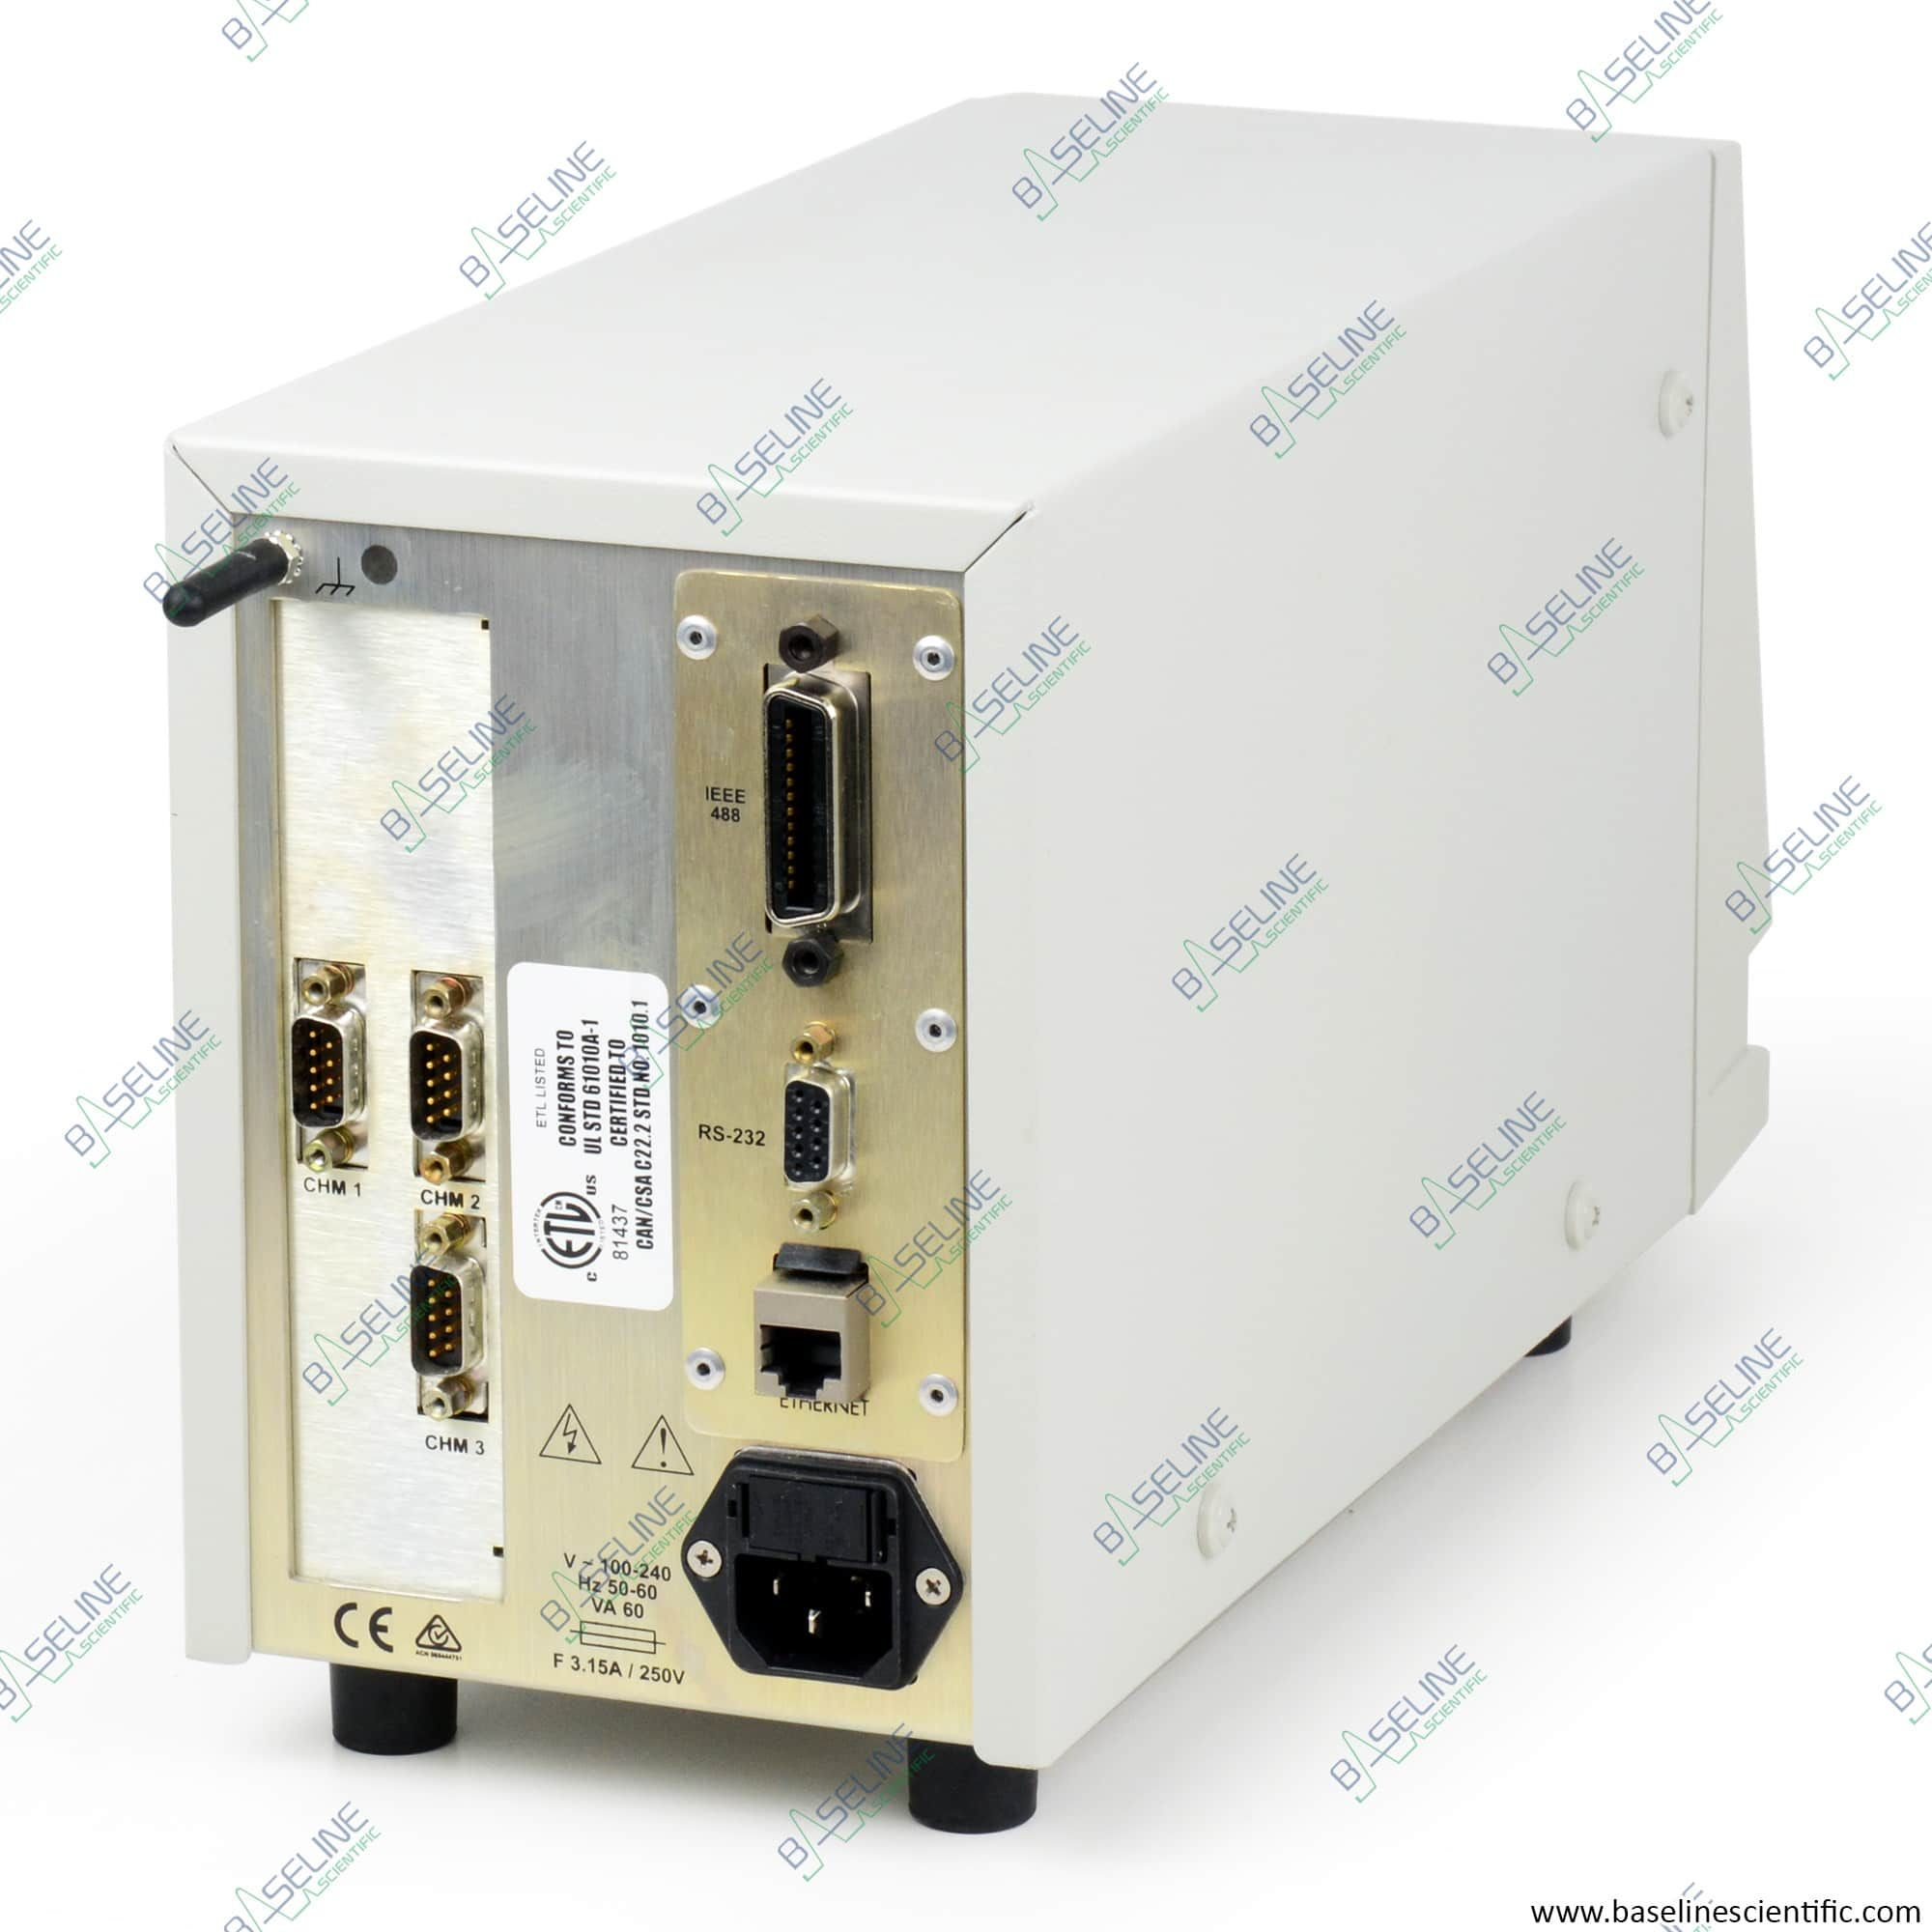 Refurbished Waters Temperature Control Module II and Post Column Reaction Module